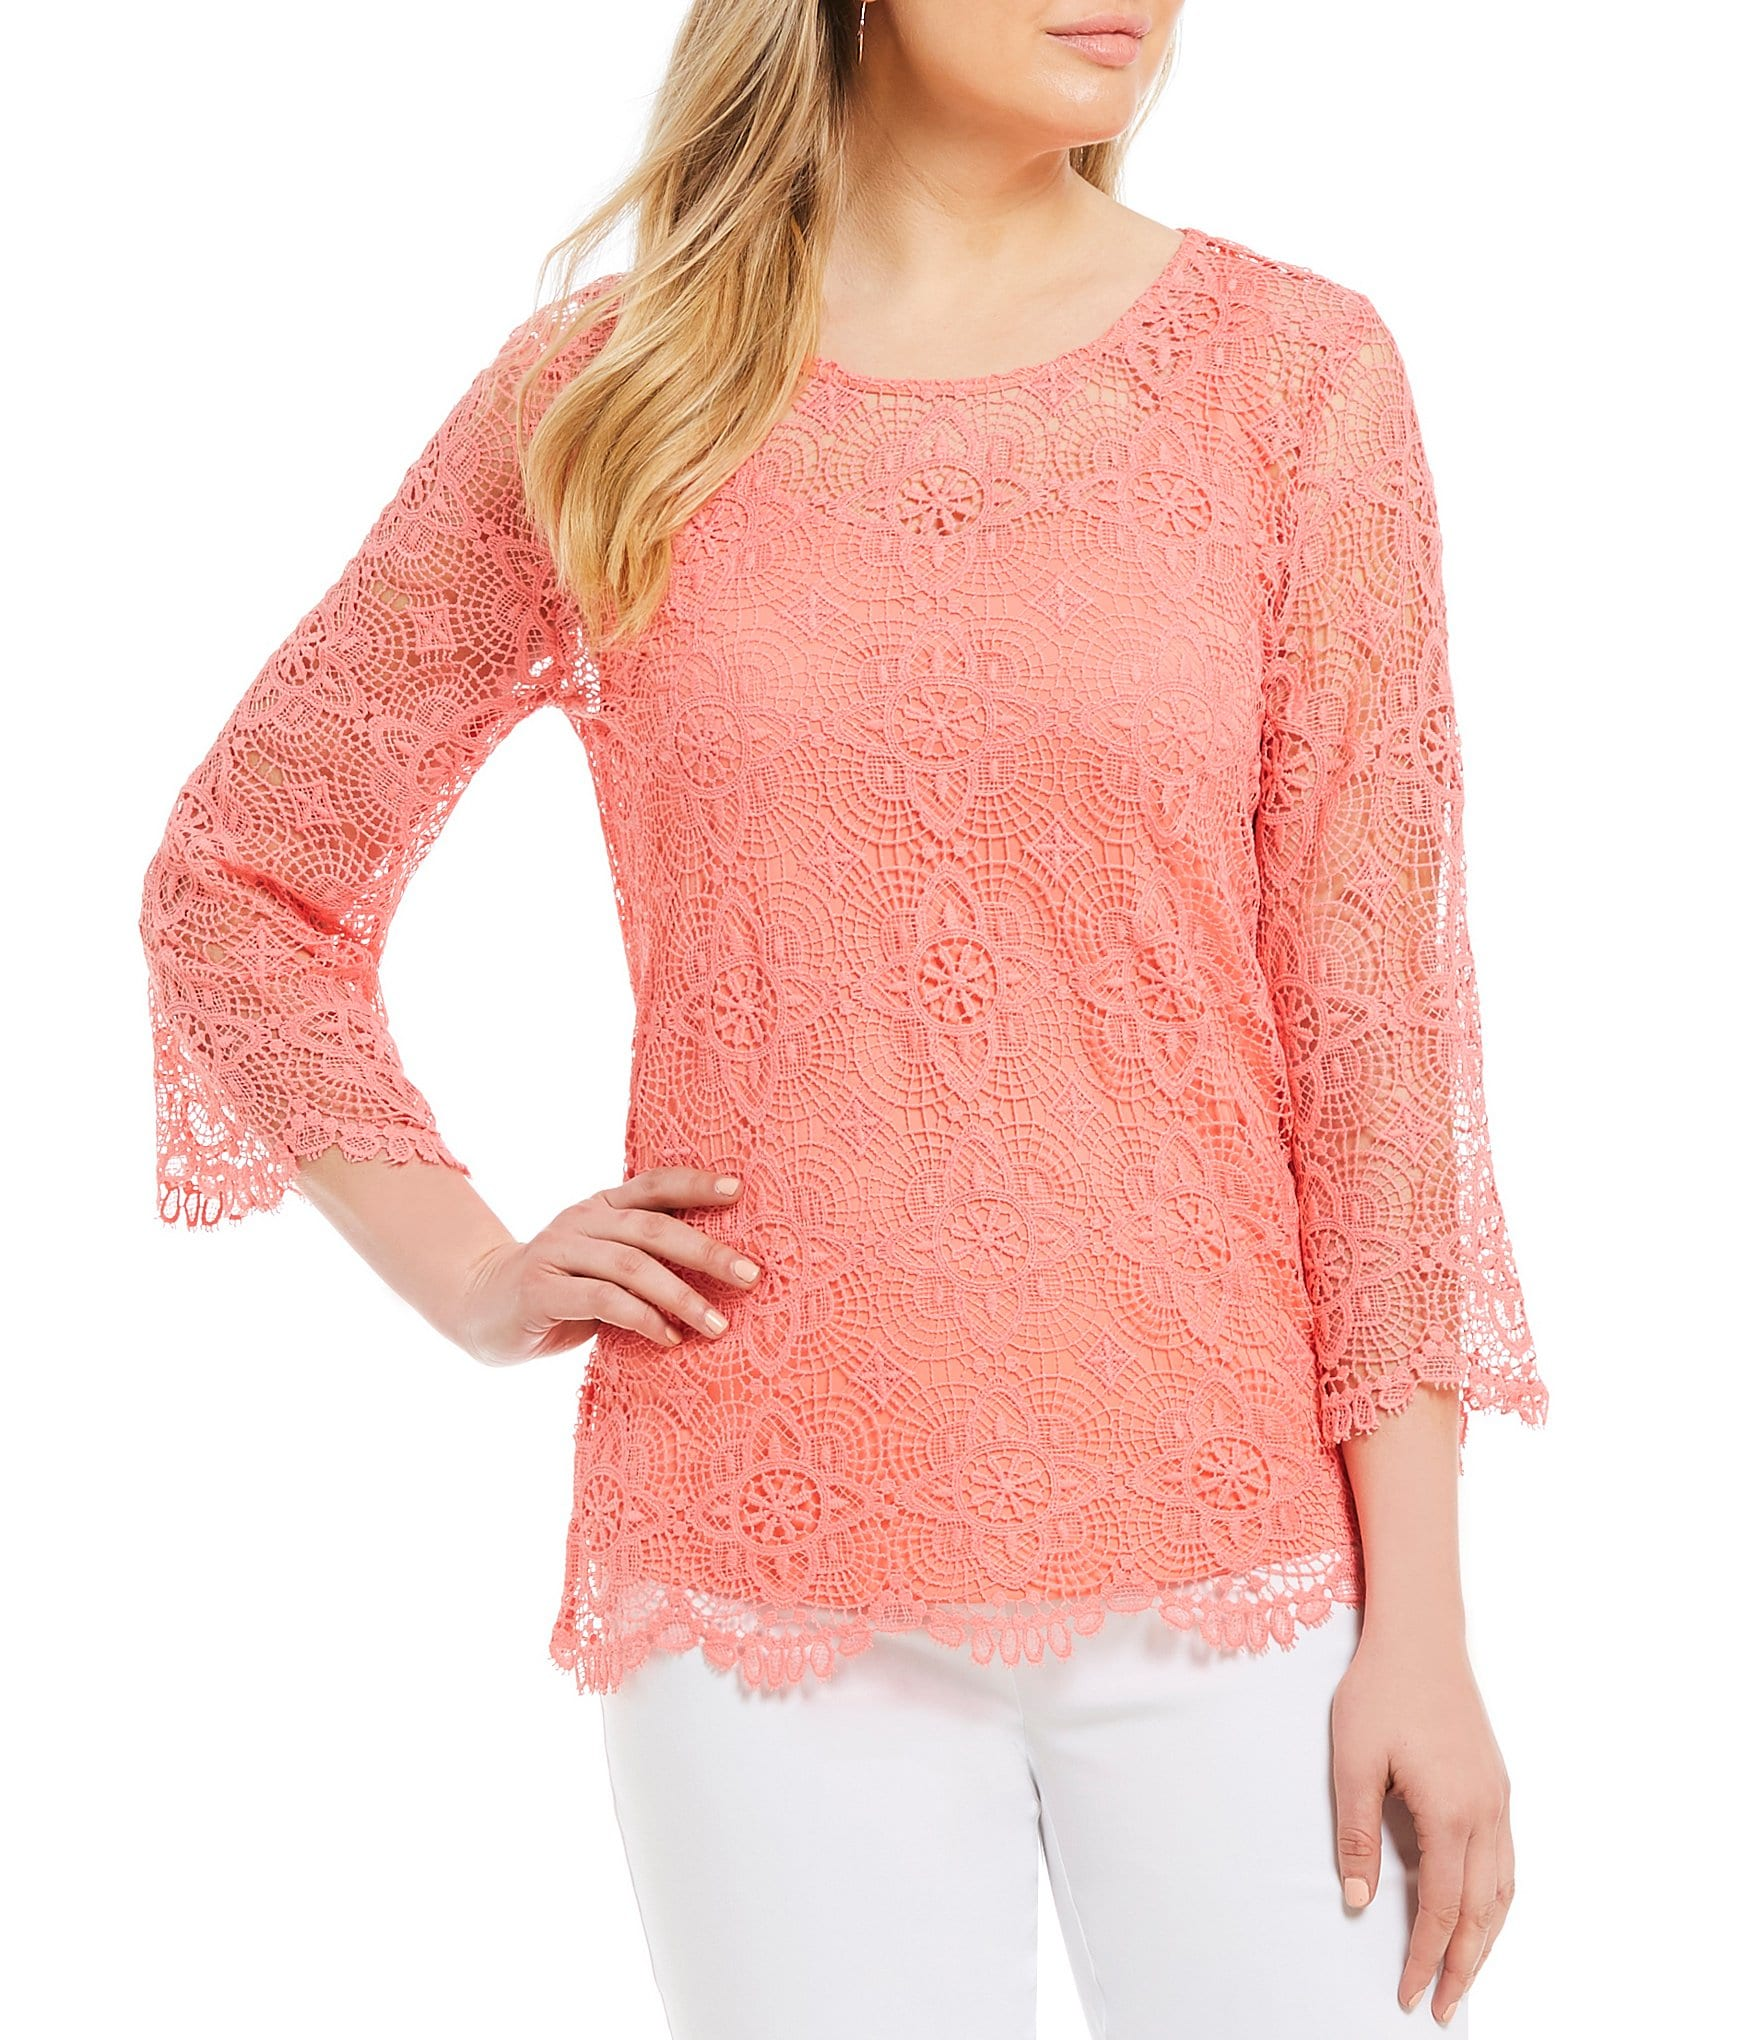 Ruby Rd. Red Women\'s Casual & Dressy Tops & Blouses | Dillards